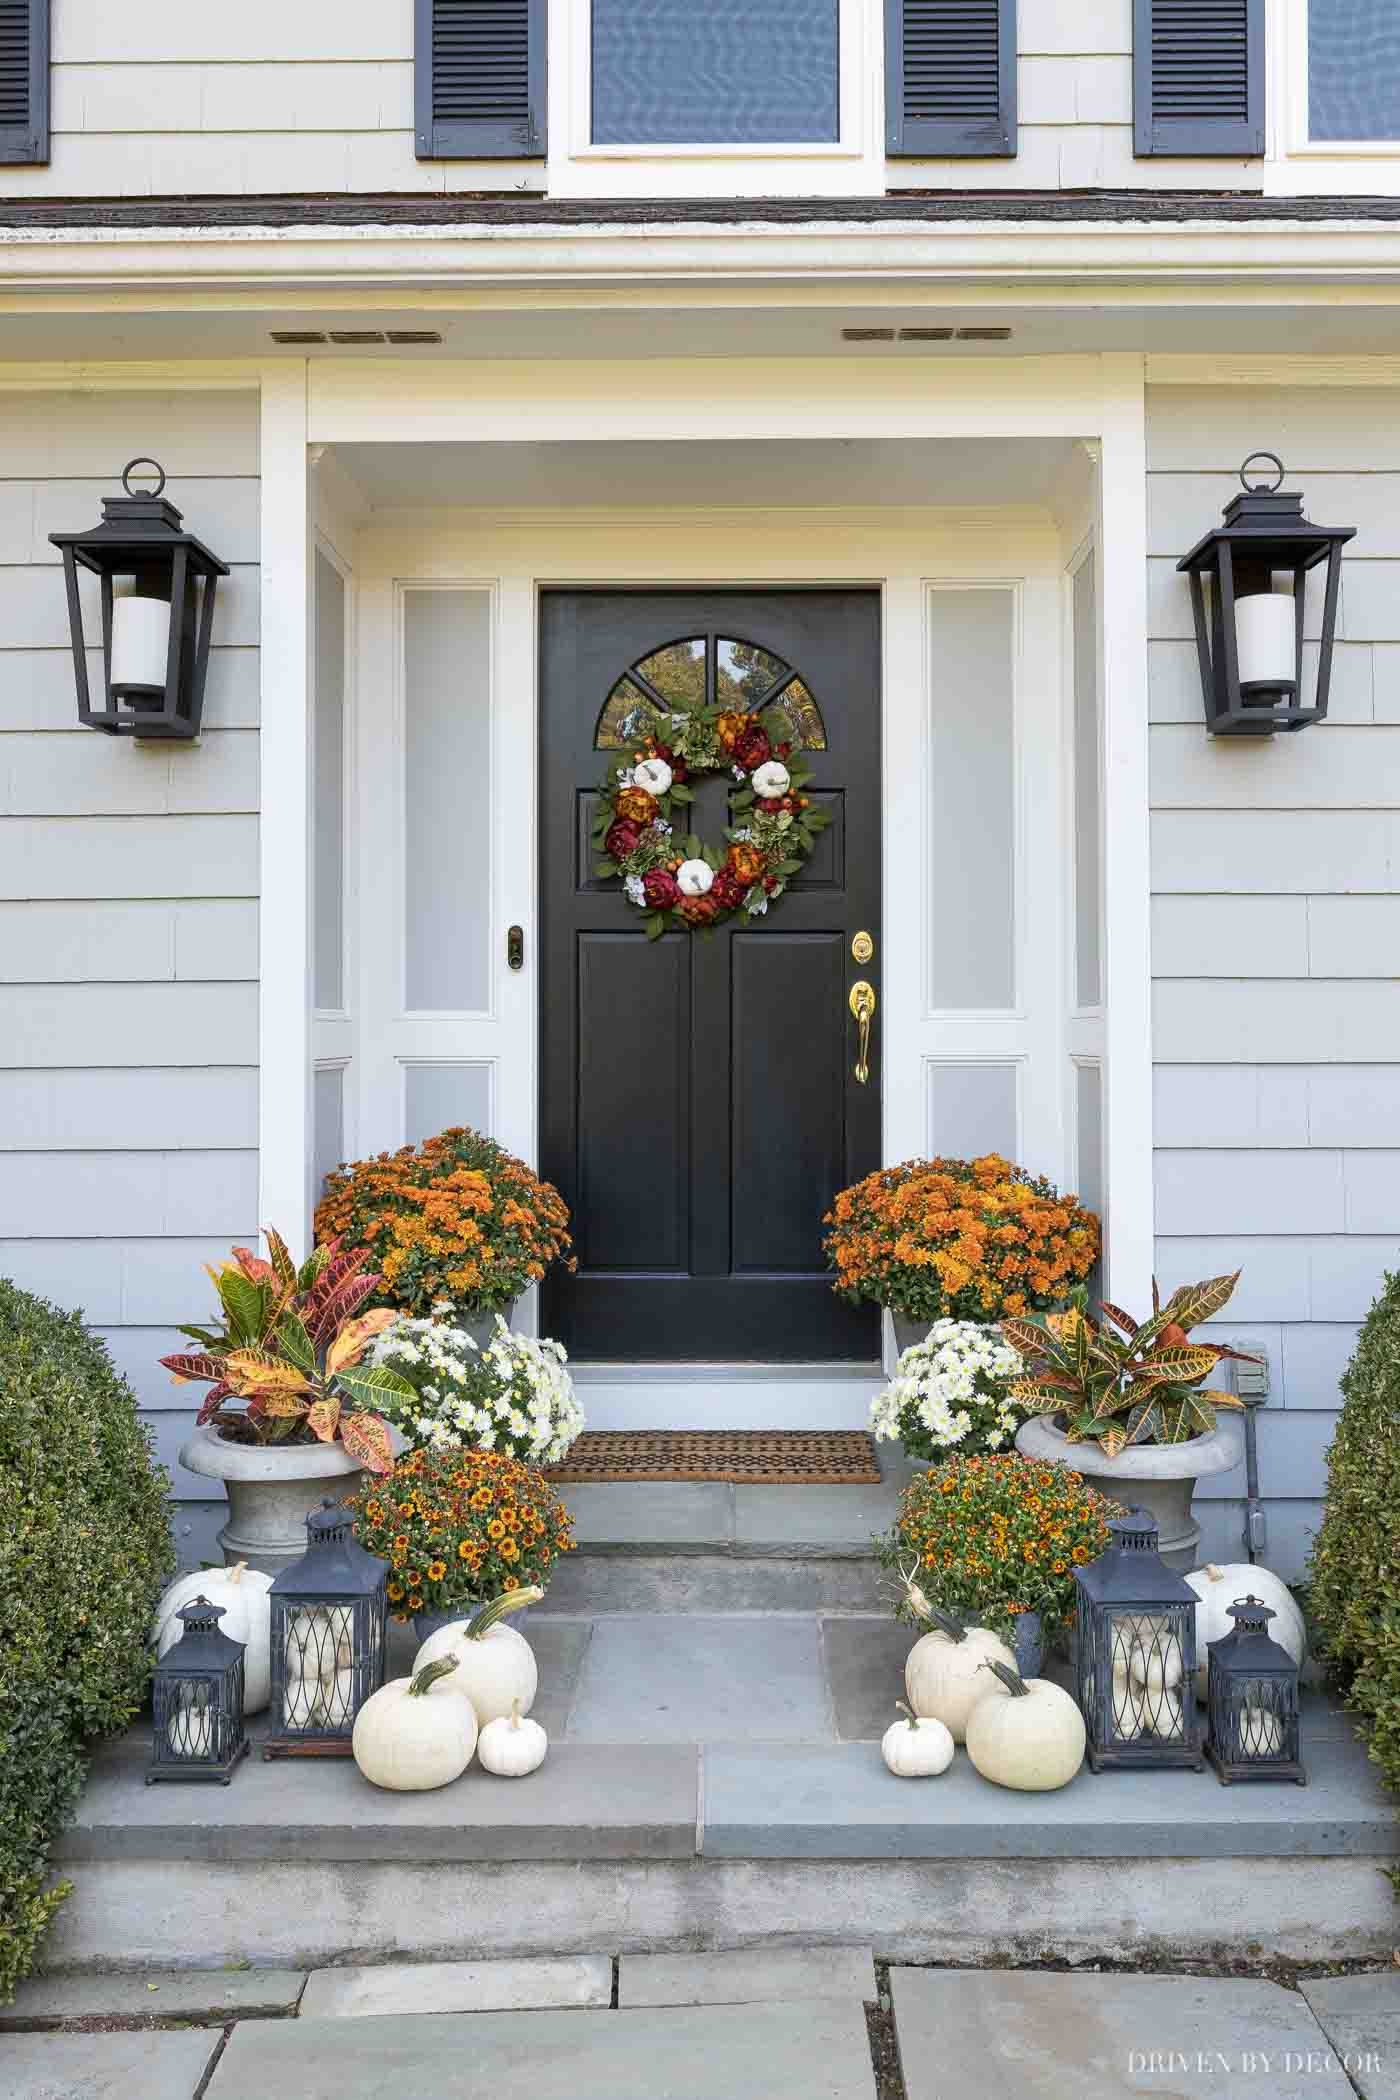 Our fall front porch decor with pumpkins, mums, lanterns, and crotons!